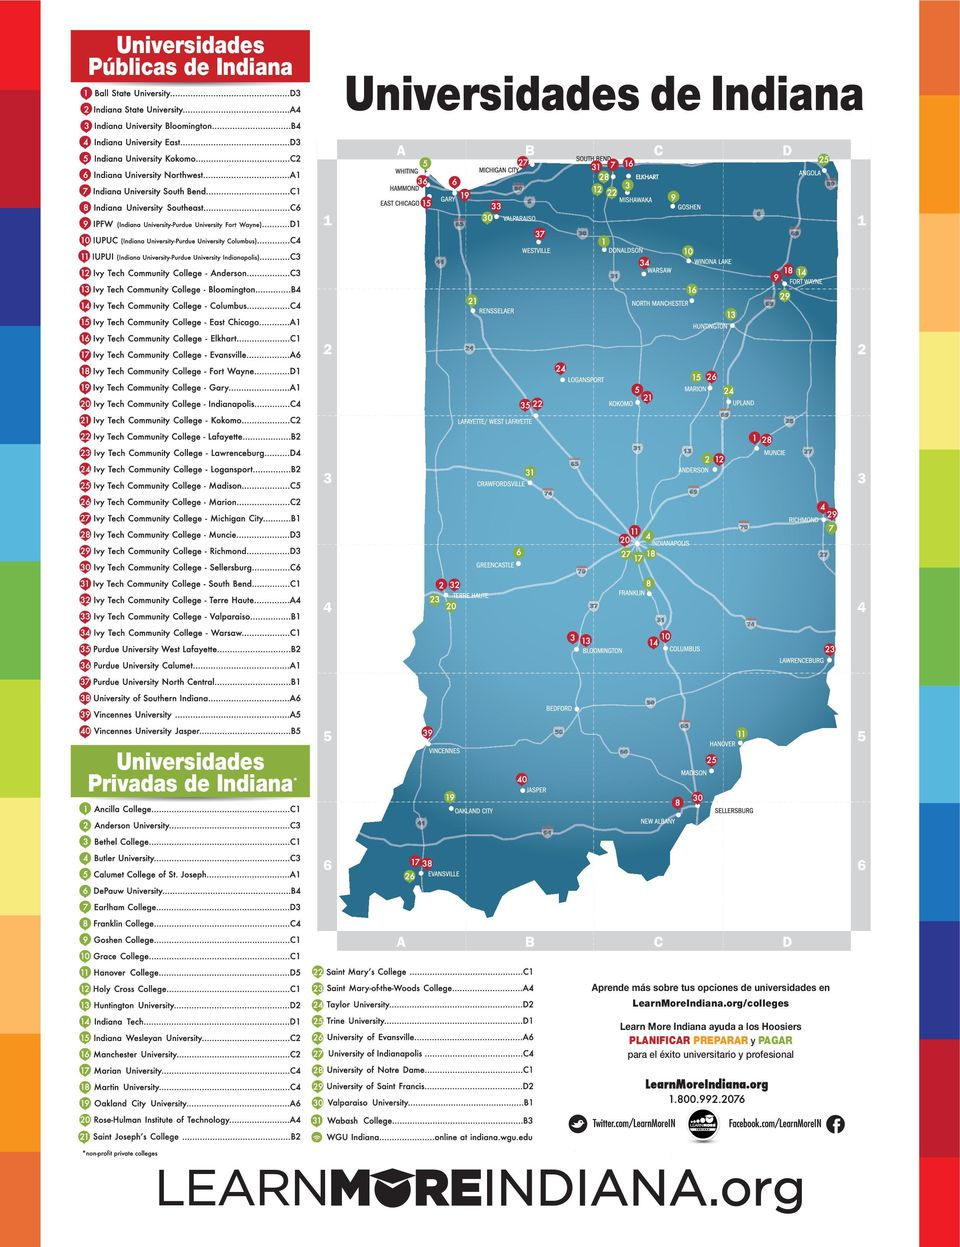 universidades en LearnMoreIndiana.